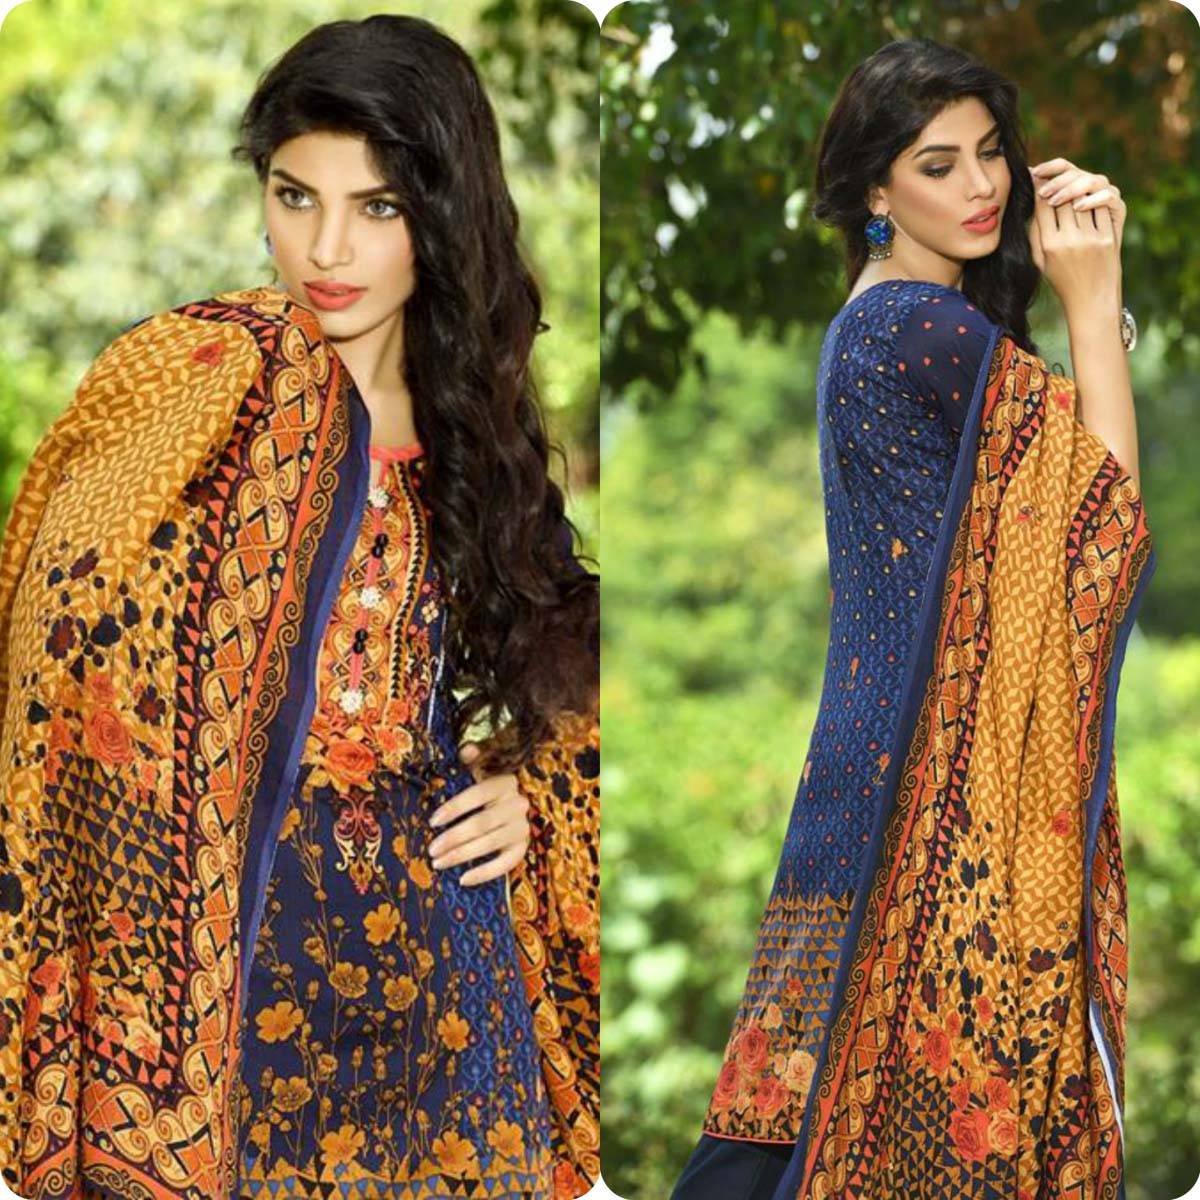 Firdous Korean Lawn Festive Eid Dresse Collection 2016-2017 look Book (13)